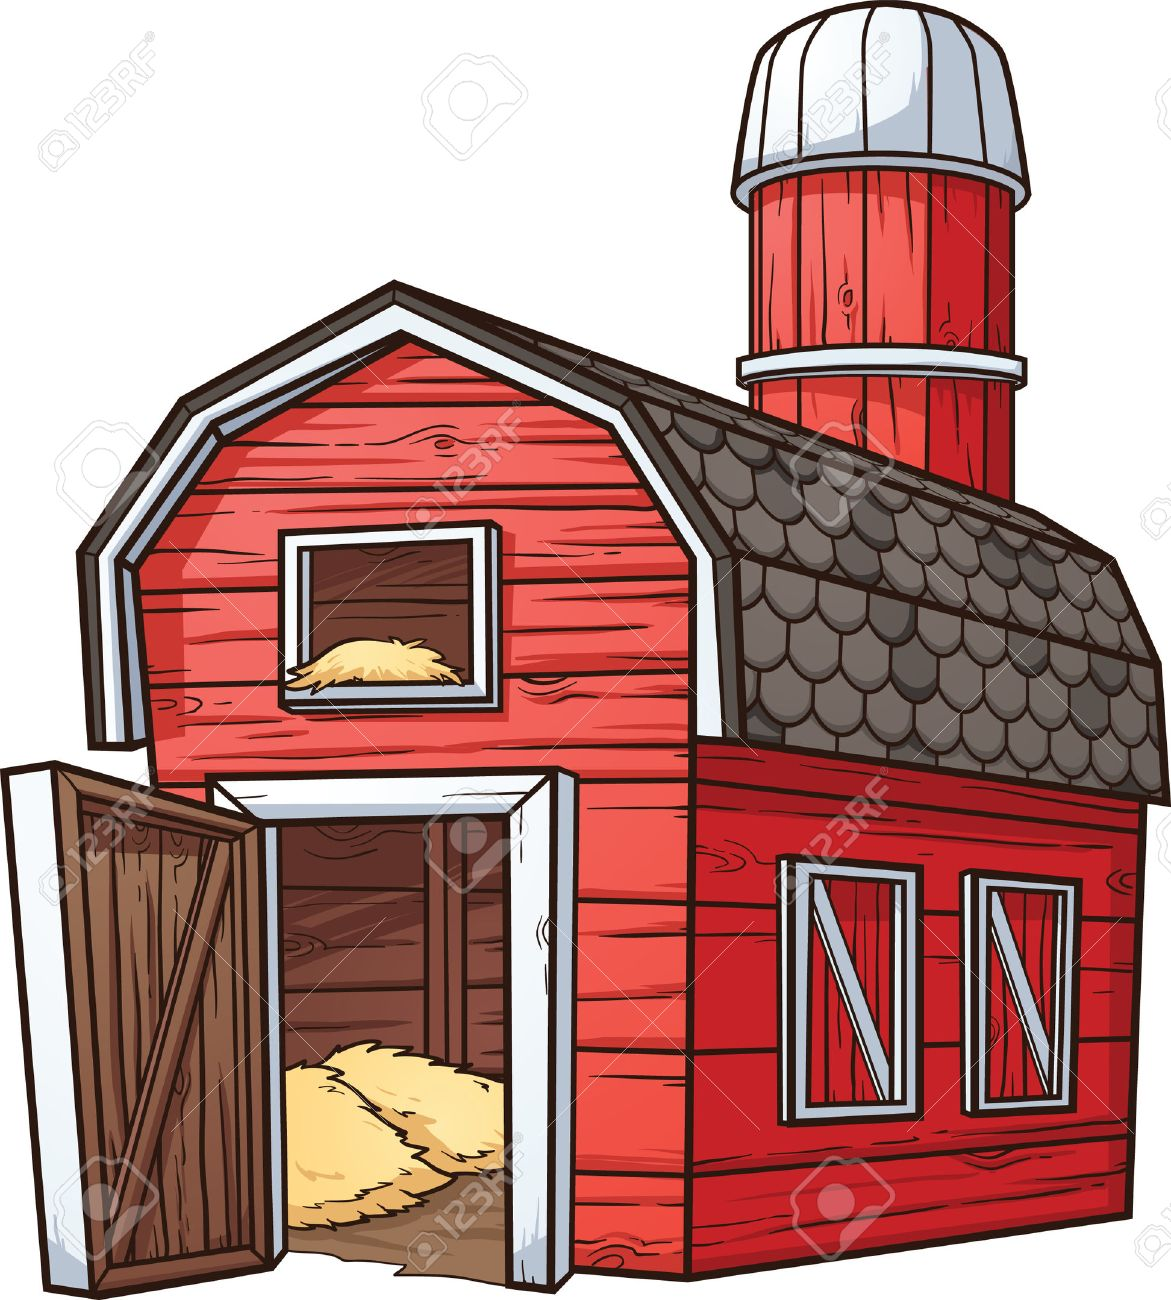 red cartoon barn royalty free cliparts vectors and stock rh 123rf com cartoon barn owl cartoon barn images